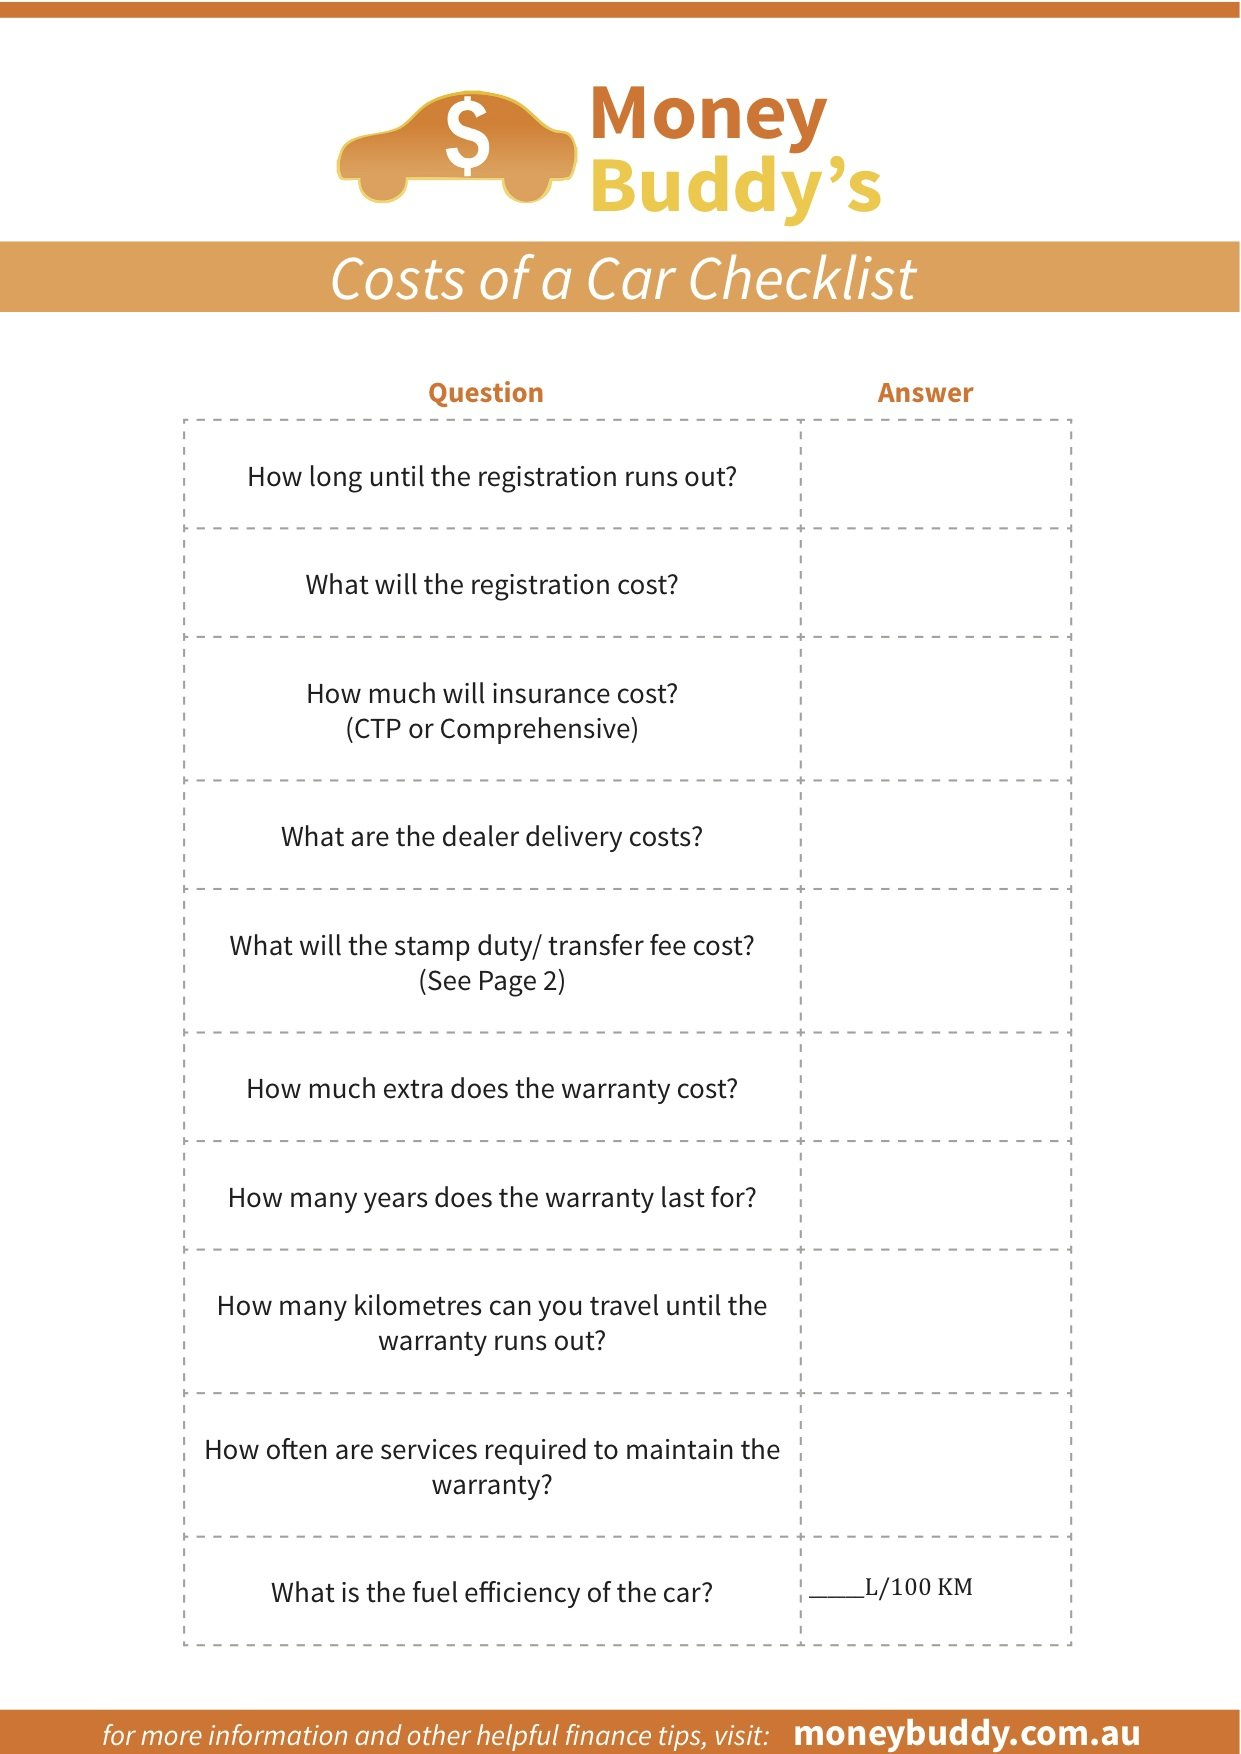 Car Costs Checklist